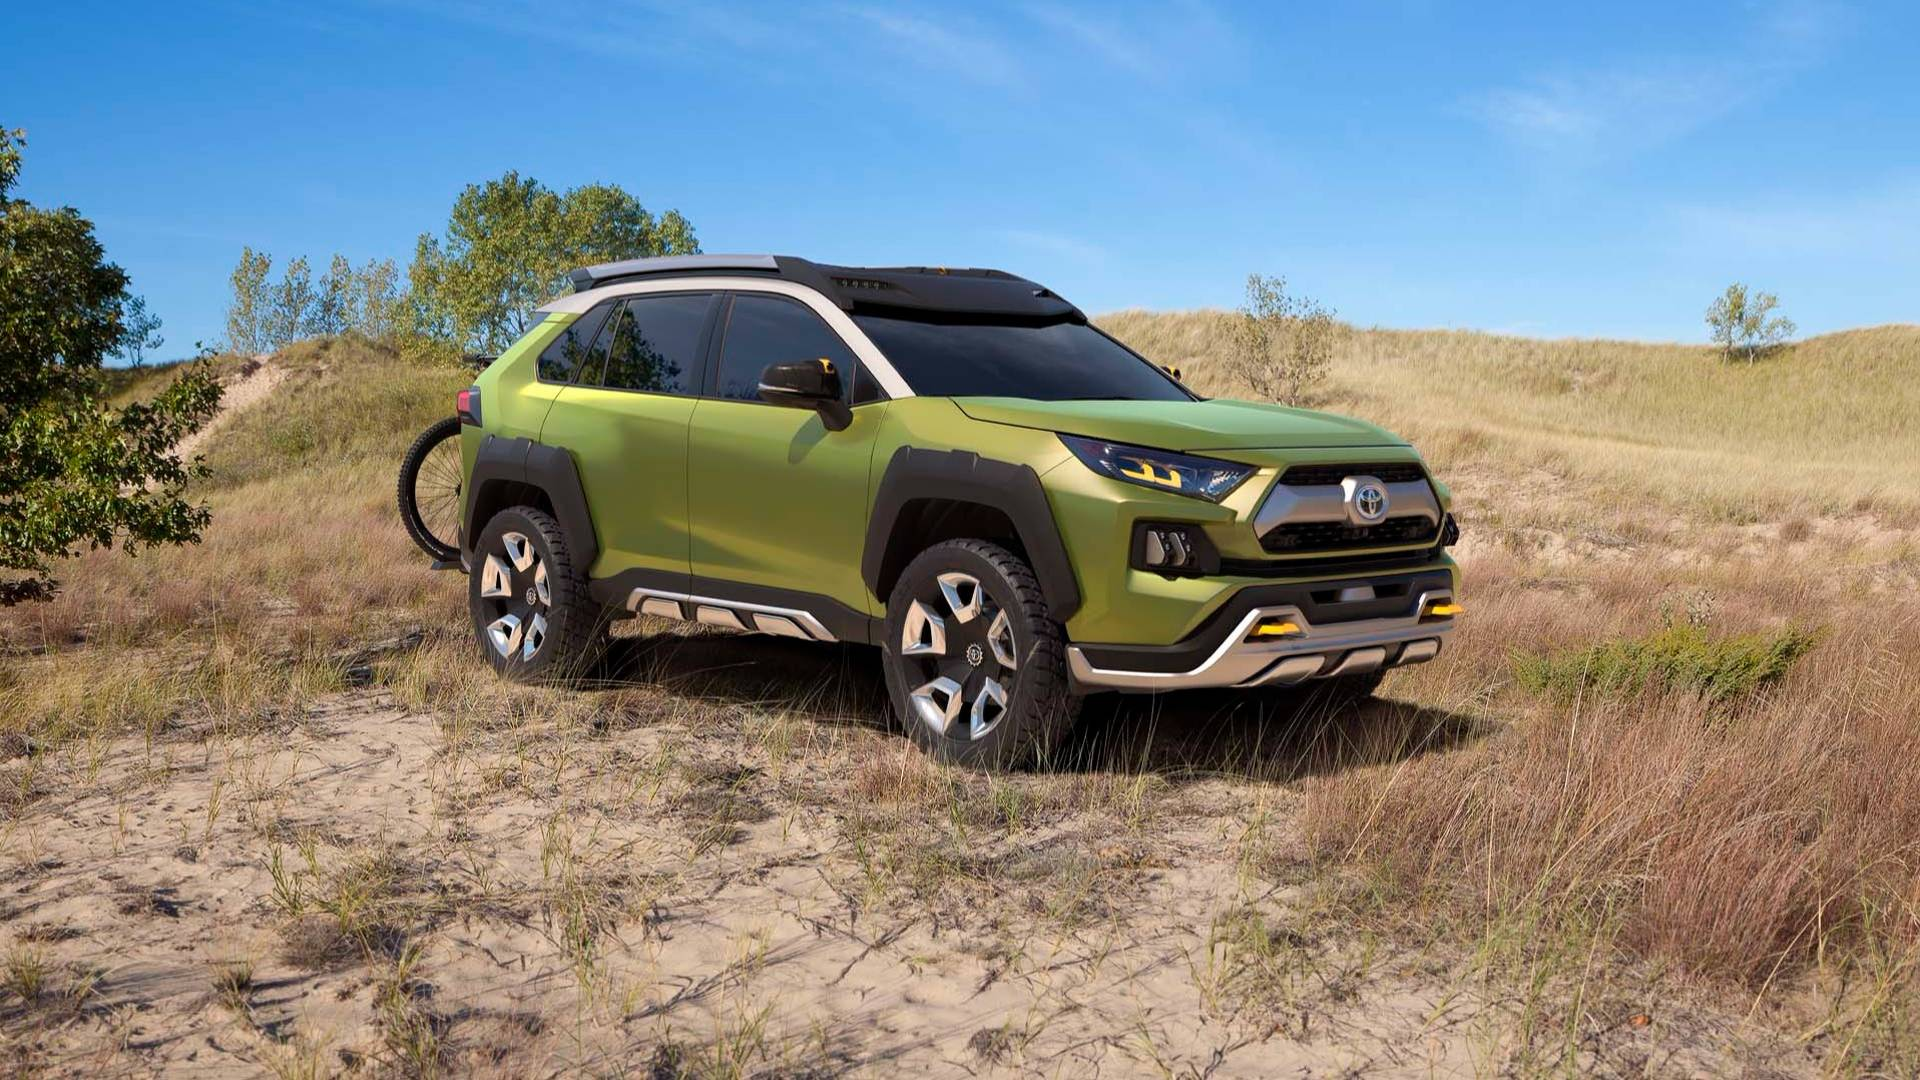 Toyota Announces New Small SUV With Optional AWD Is In The Works